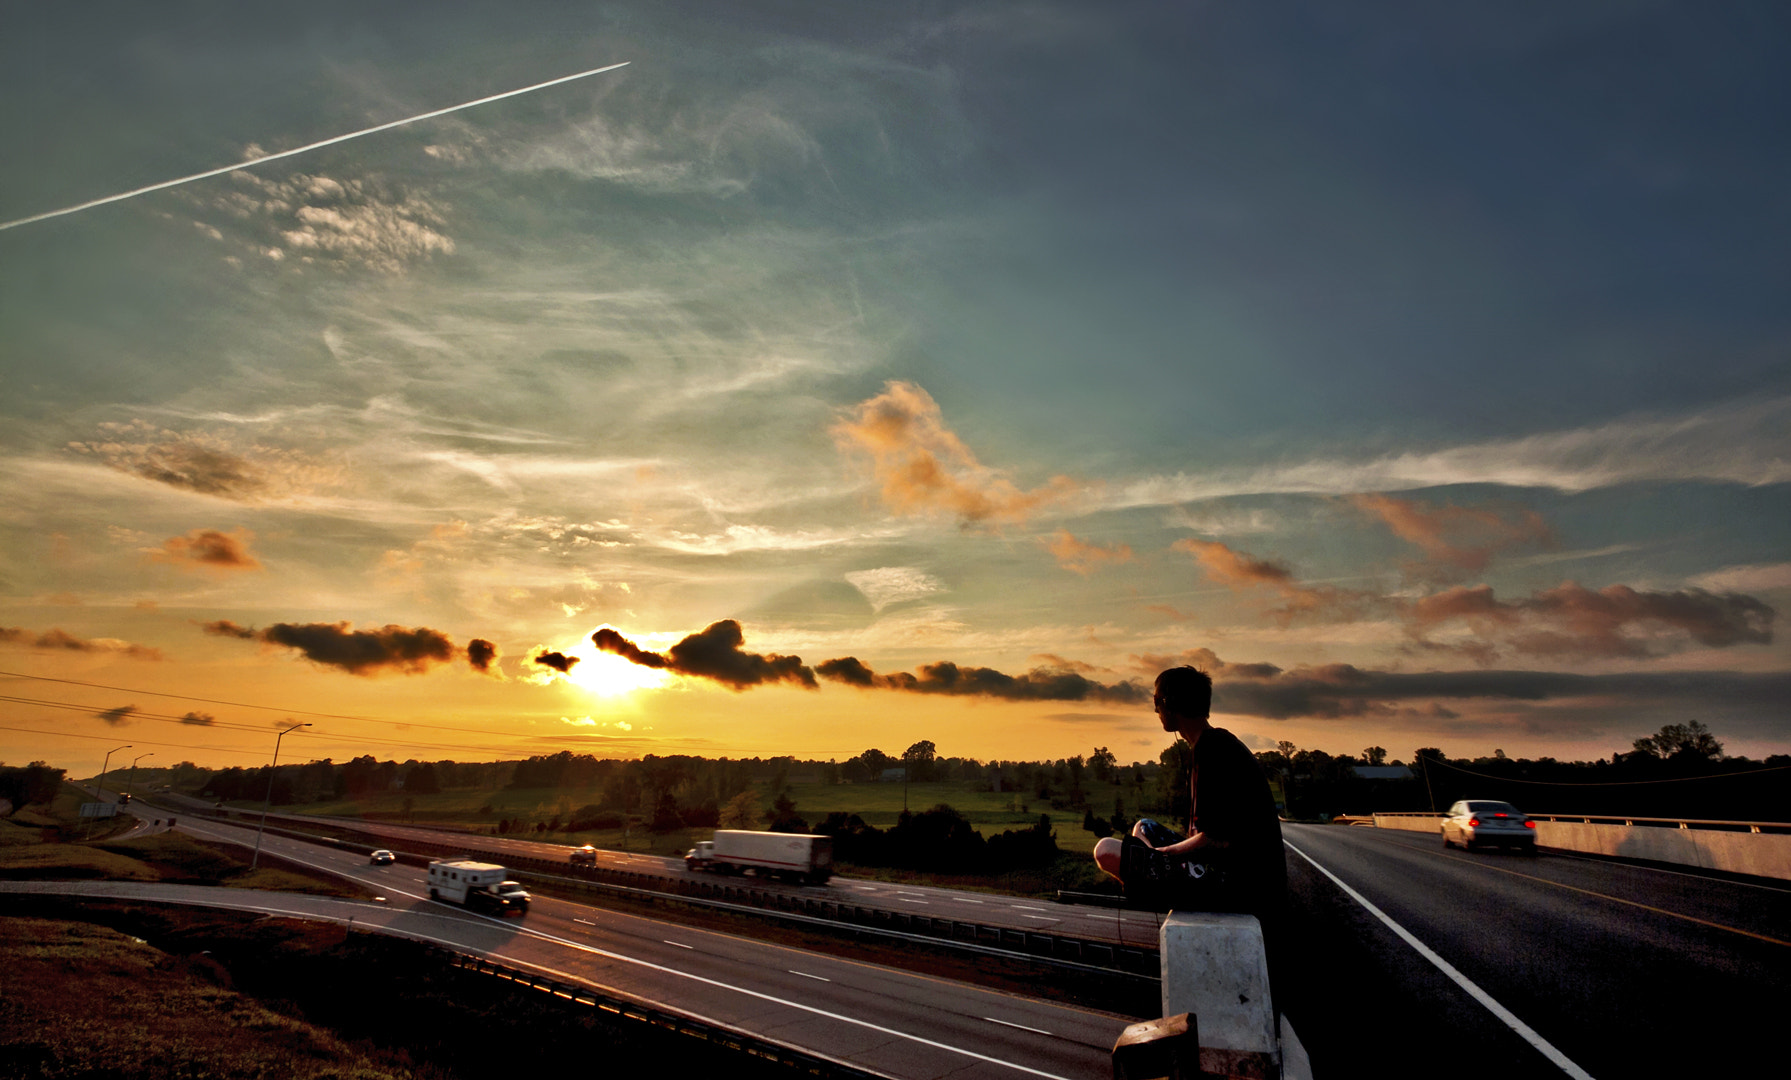 Photograph Watching the World Go By (#2) by Matt Molloy on 500px